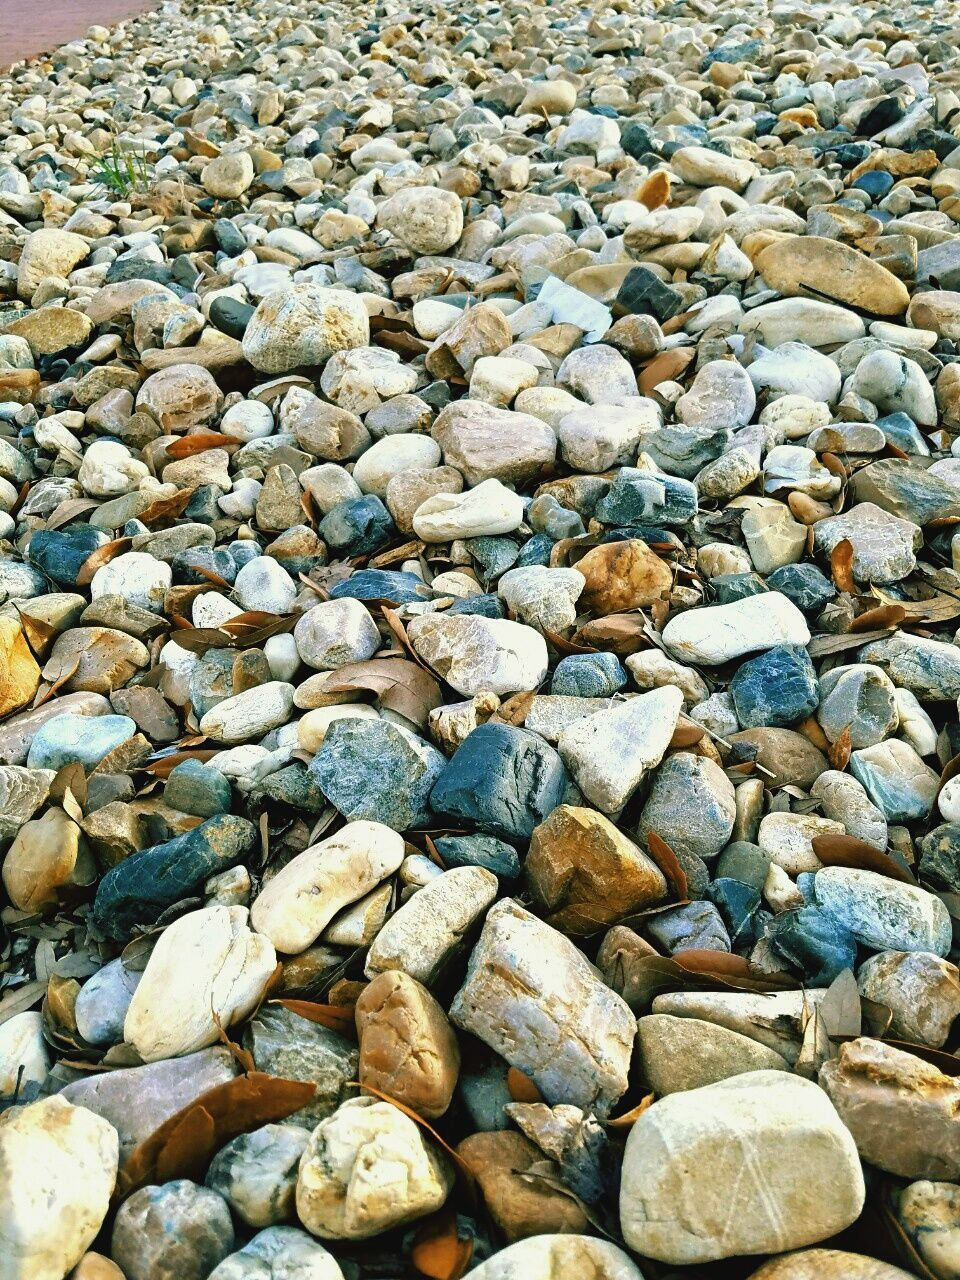 pebble, pebble beach, shore, stone - object, beach, nature, full frame, rock - object, large group of objects, abundance, no people, backgrounds, outdoors, day, beauty in nature, water, close-up